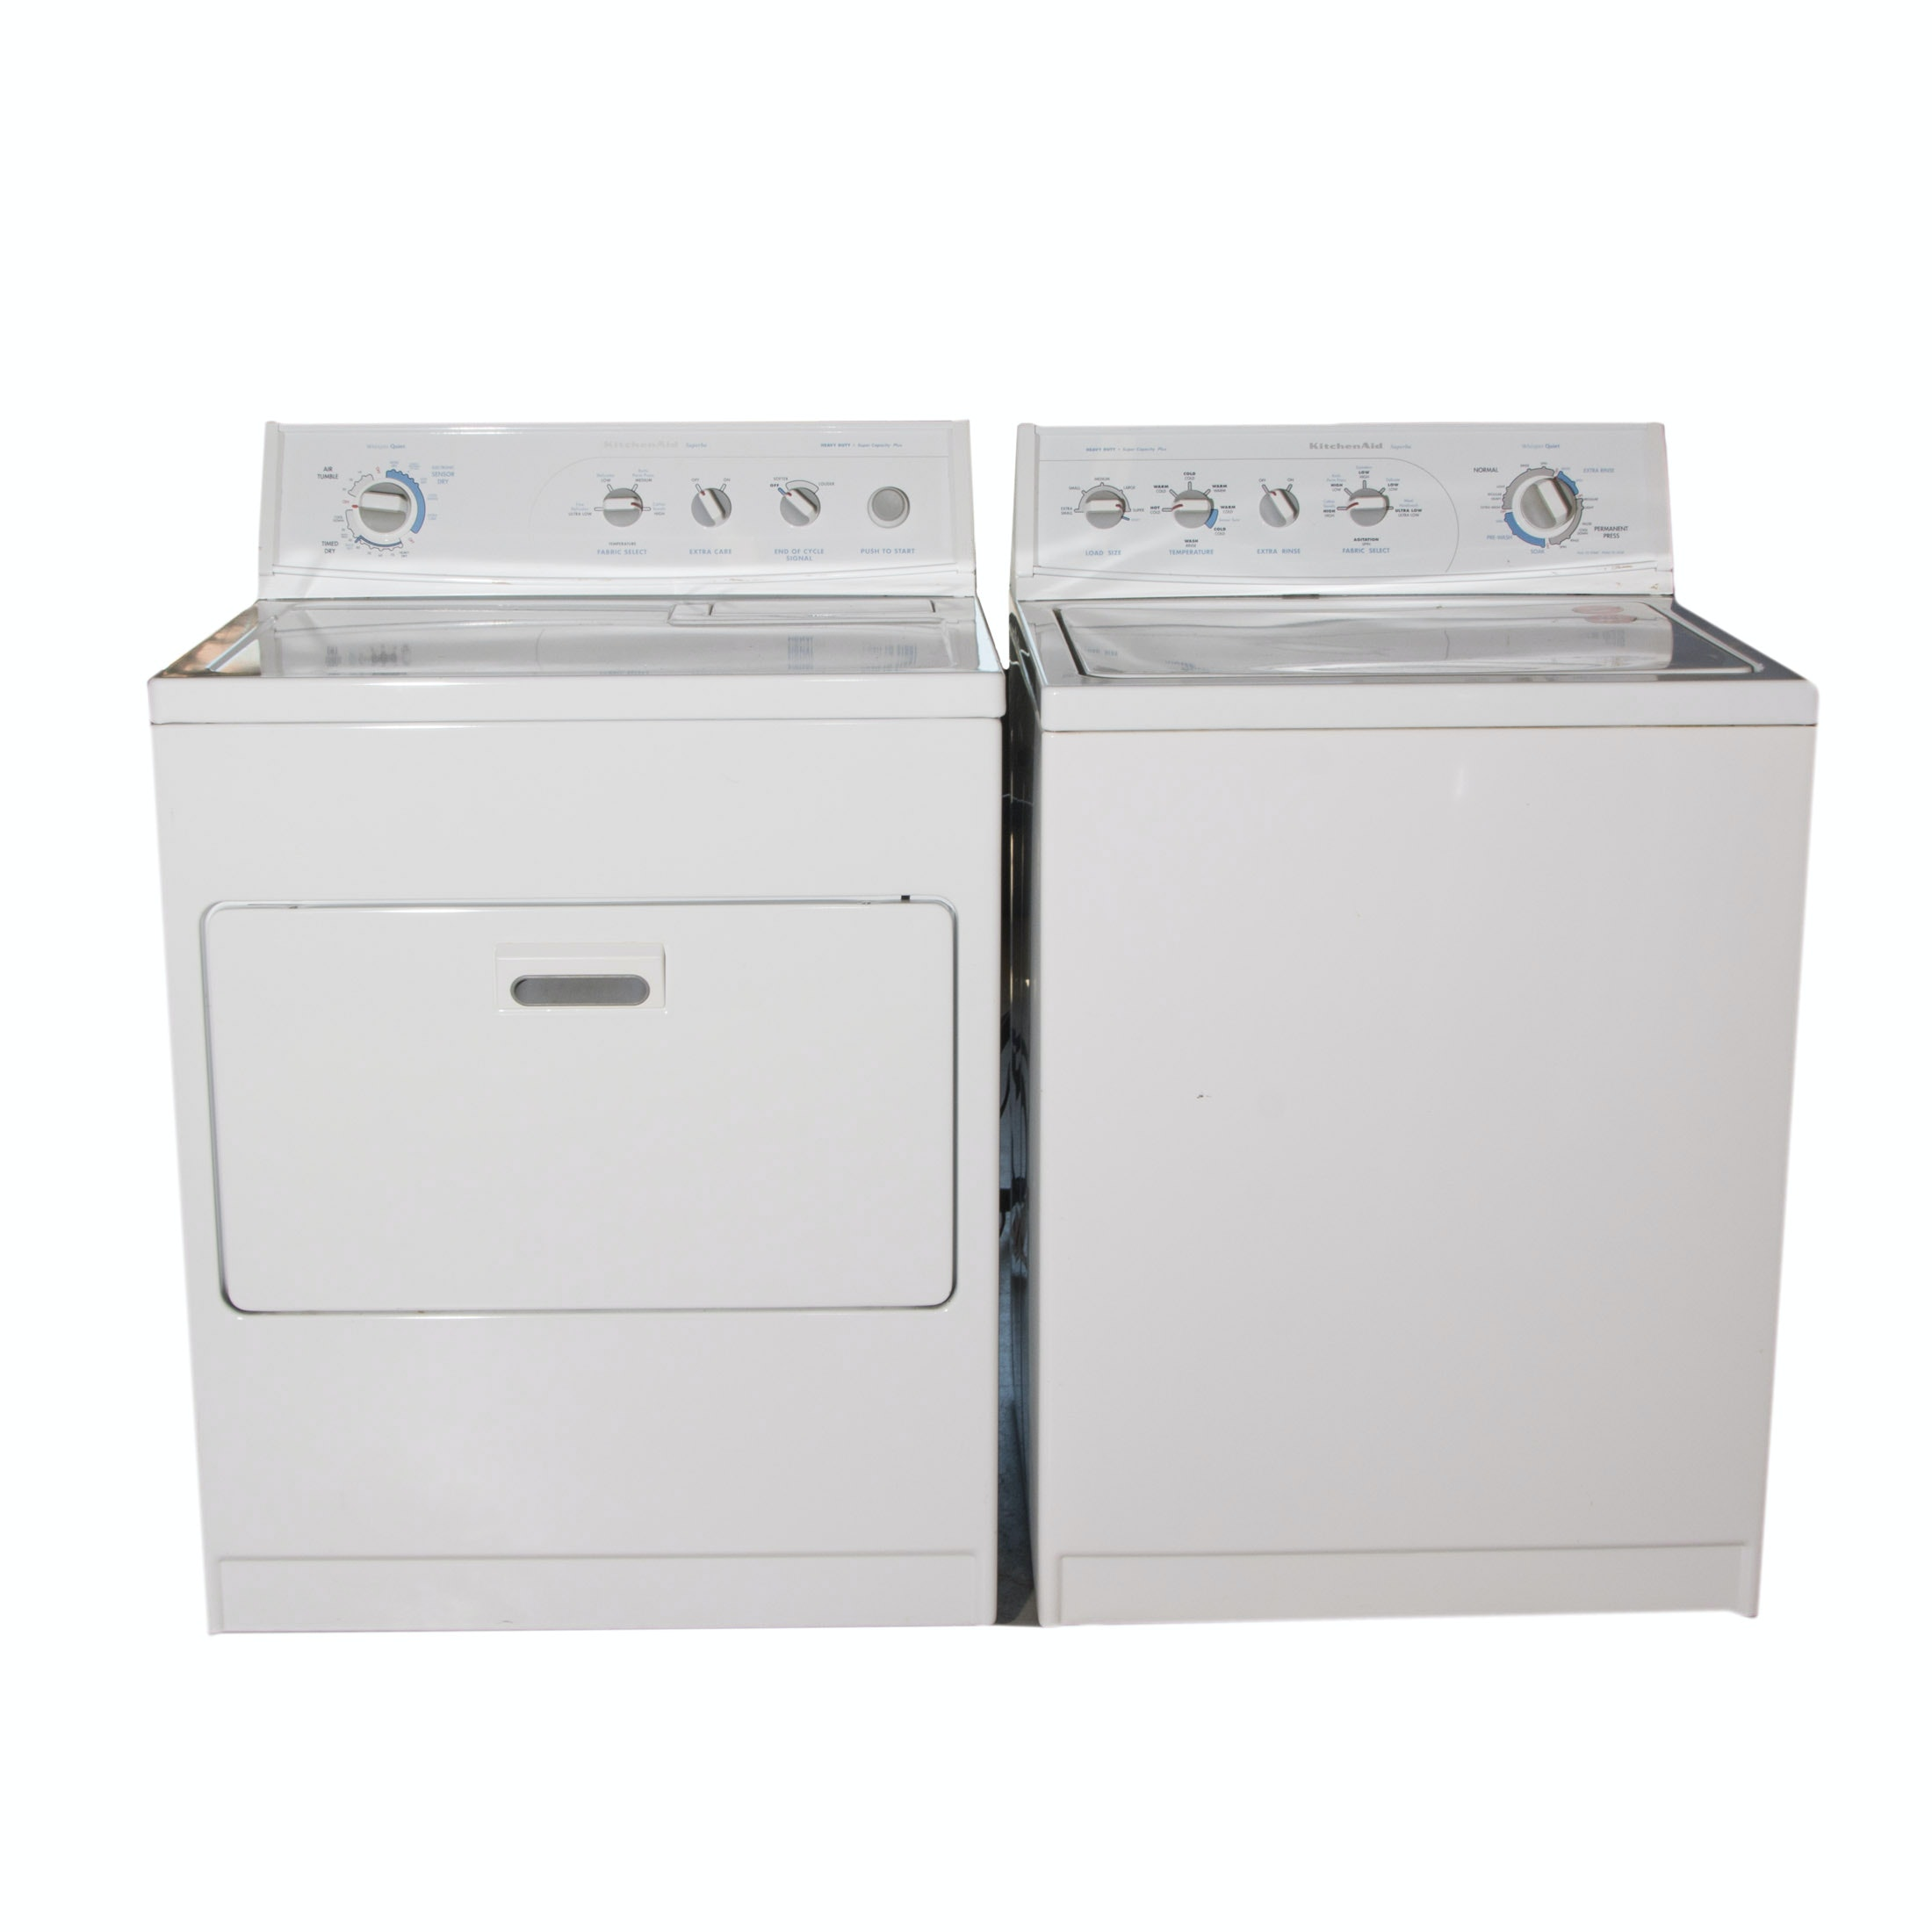 Superieur KitchenAid Washer And Dryer ...